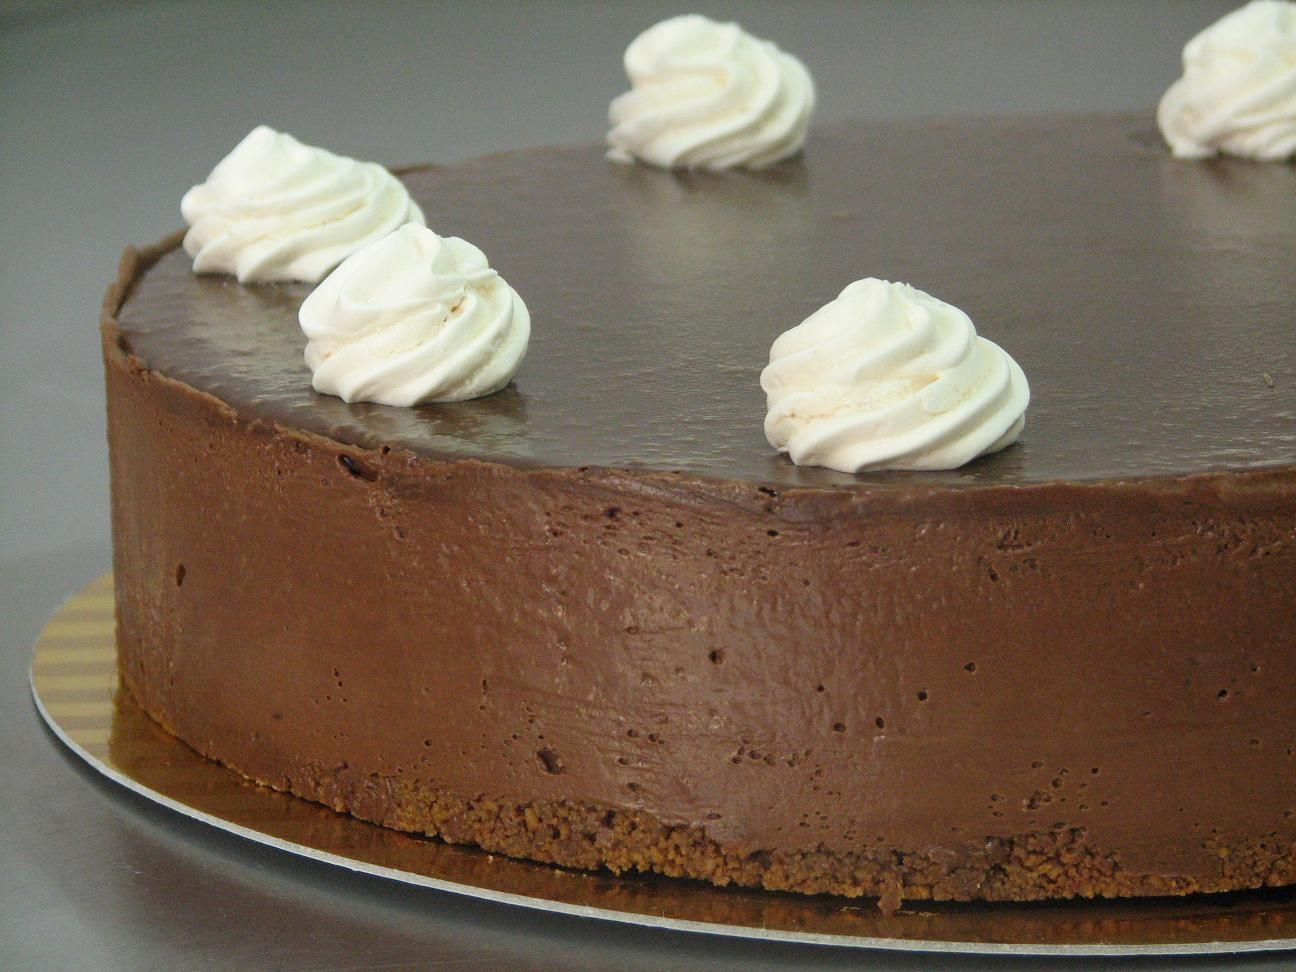 Chocolate Mousse Cake with Meringue